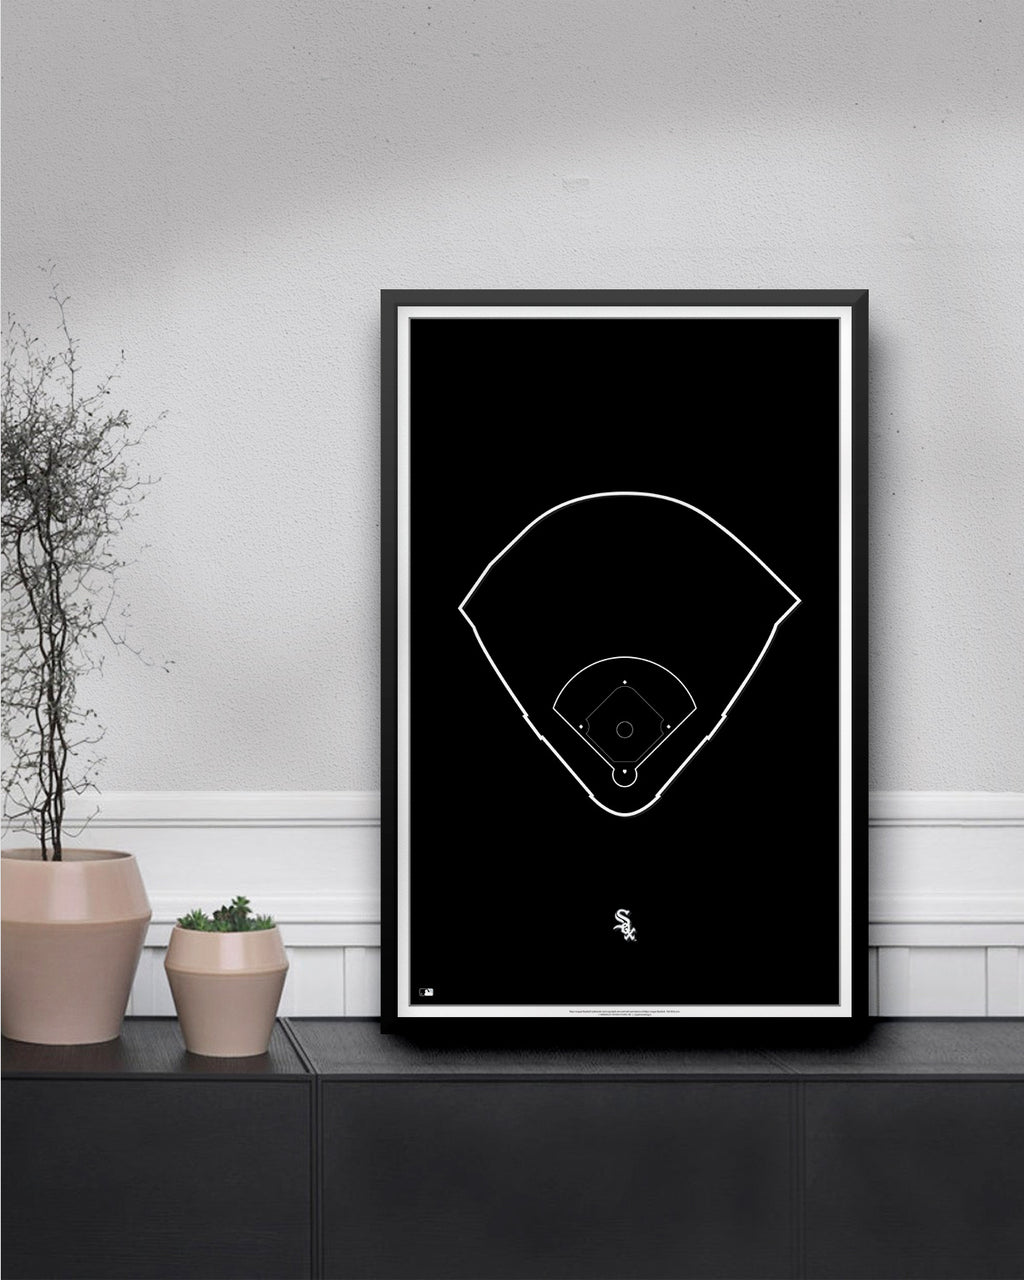 MLB Outline Ballpark - Guaranteed Rate Field Chicago White Sox - S Preston